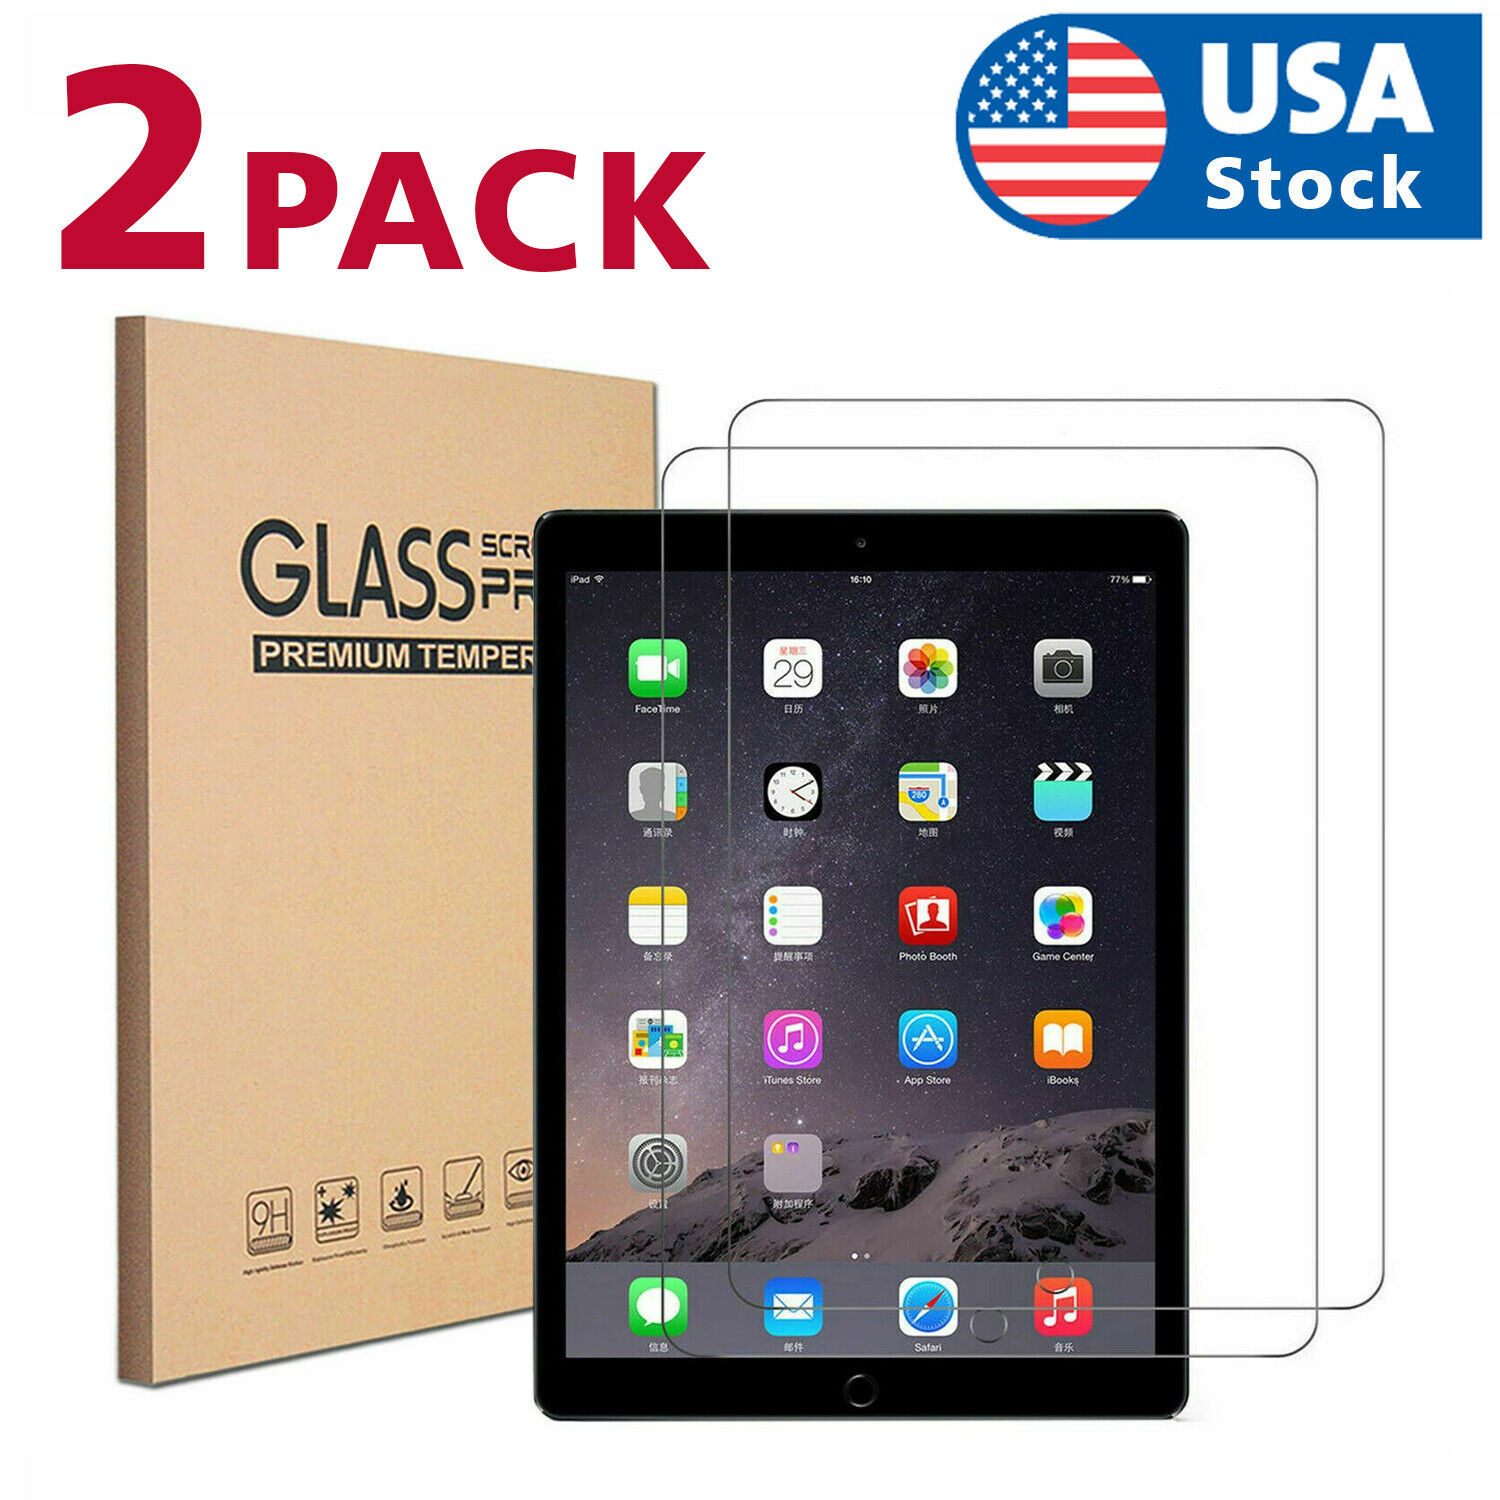 2PACK Tempered Glass Screen Protector For iPad 5th 6th Generation iPad Pro 9.7″ Computers/Tablets & Networking